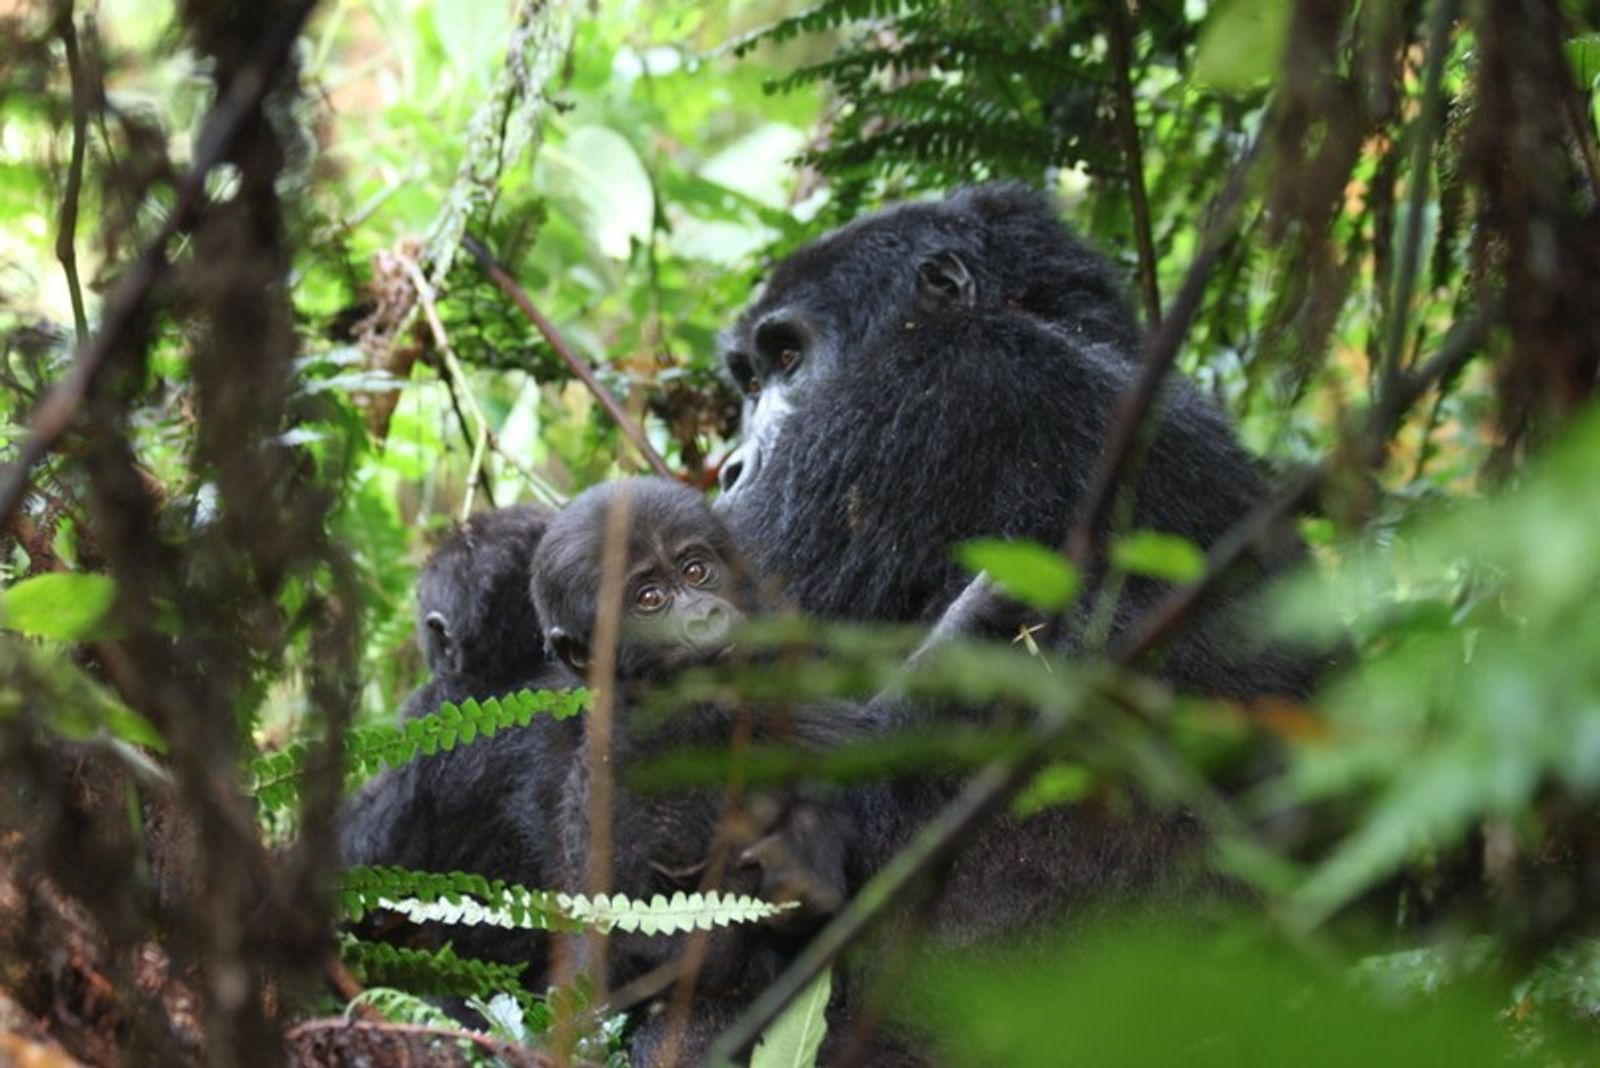 The mountain gorillas are gentle giants, accepting of people and curious.